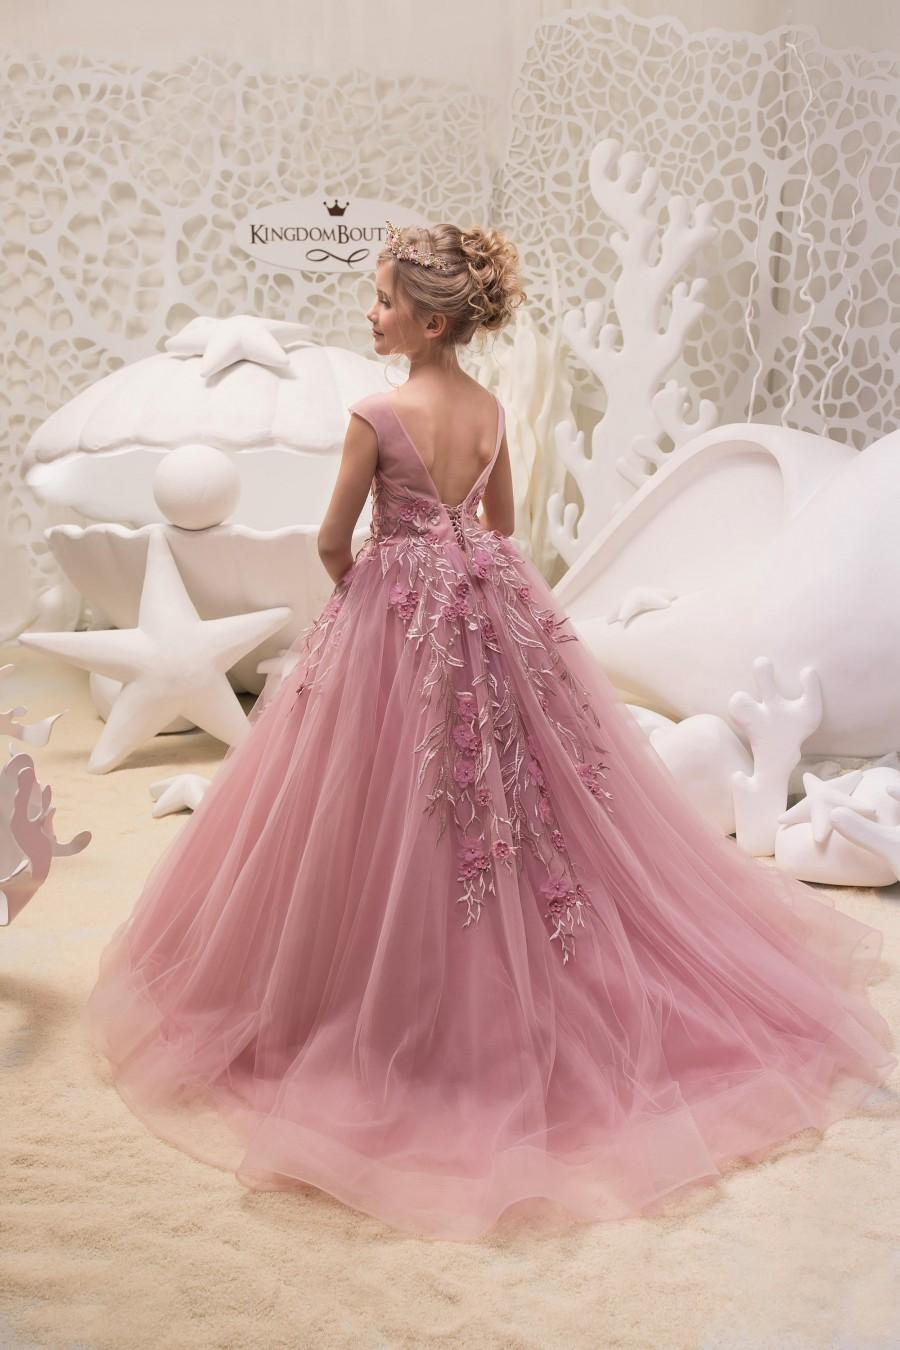 Mariage - Blush Pink Flower Girl Dress - Birthday Wedding Party Holiday Bridesmaid Flower Girl Blush Pink Tulle Lace Dress 21-063